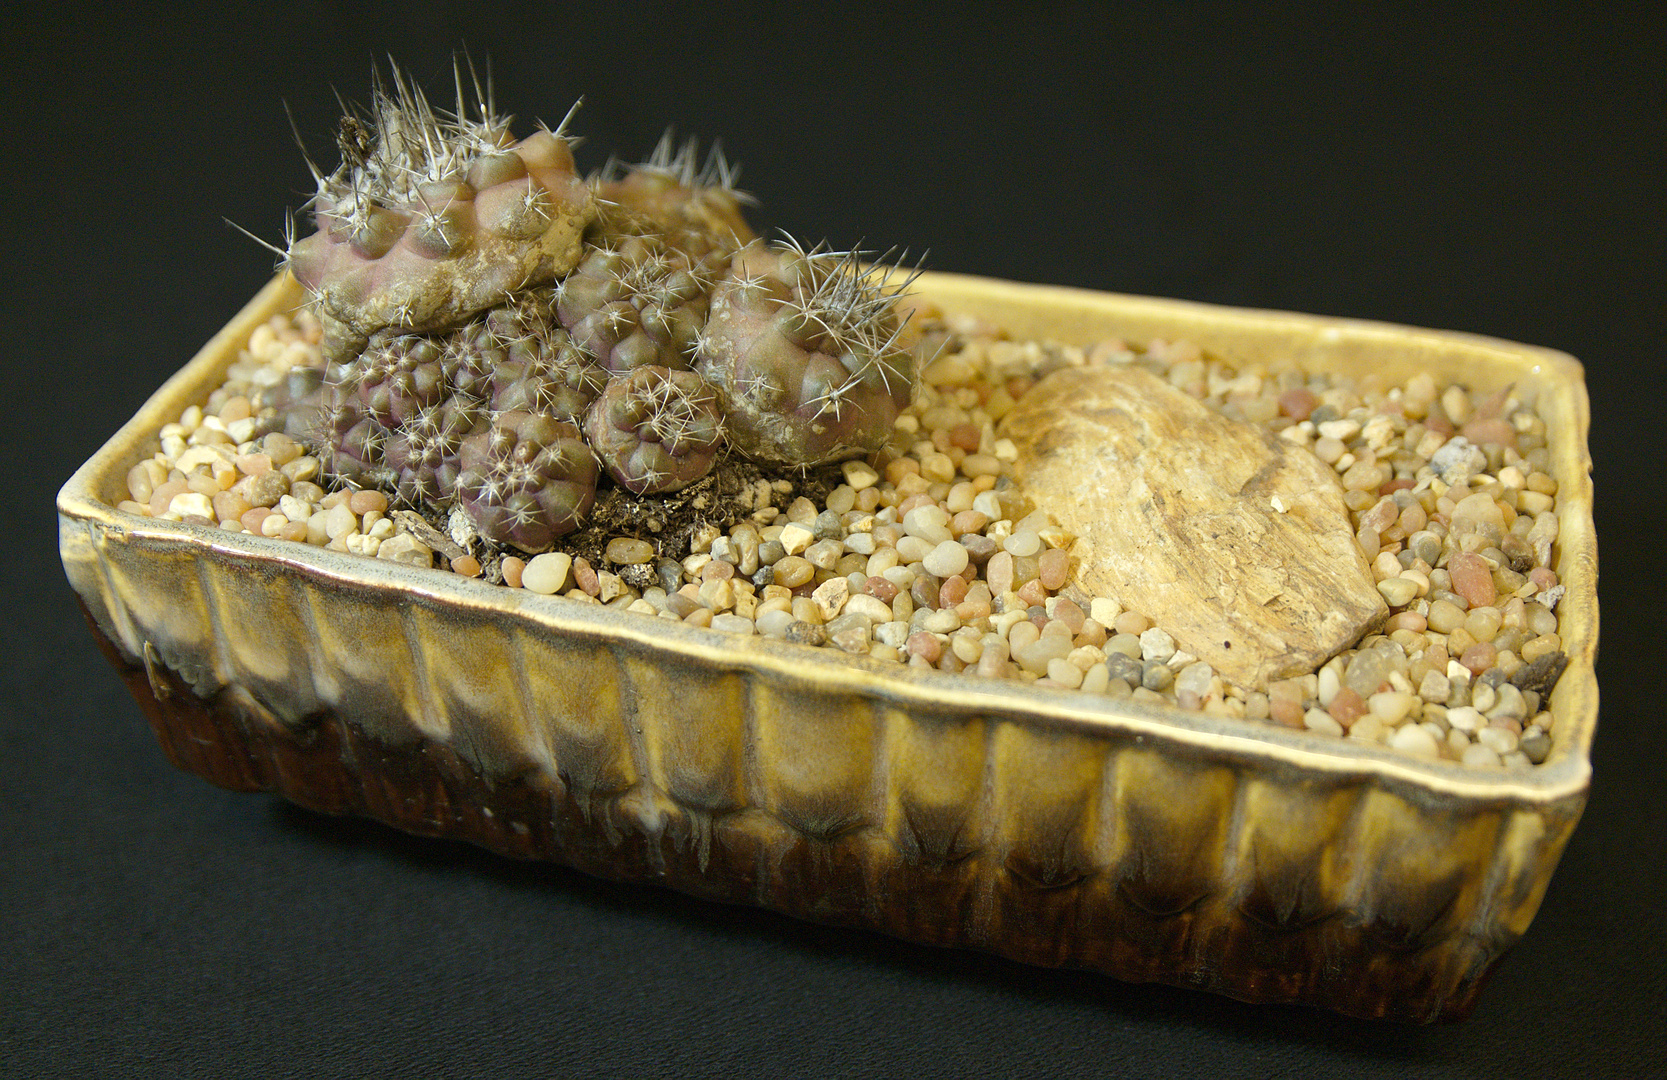 SCCSS 2017 October - Winner Intermediate Cactus - Phyllis DeCrescenzo - Copiapoa griseoviolacea